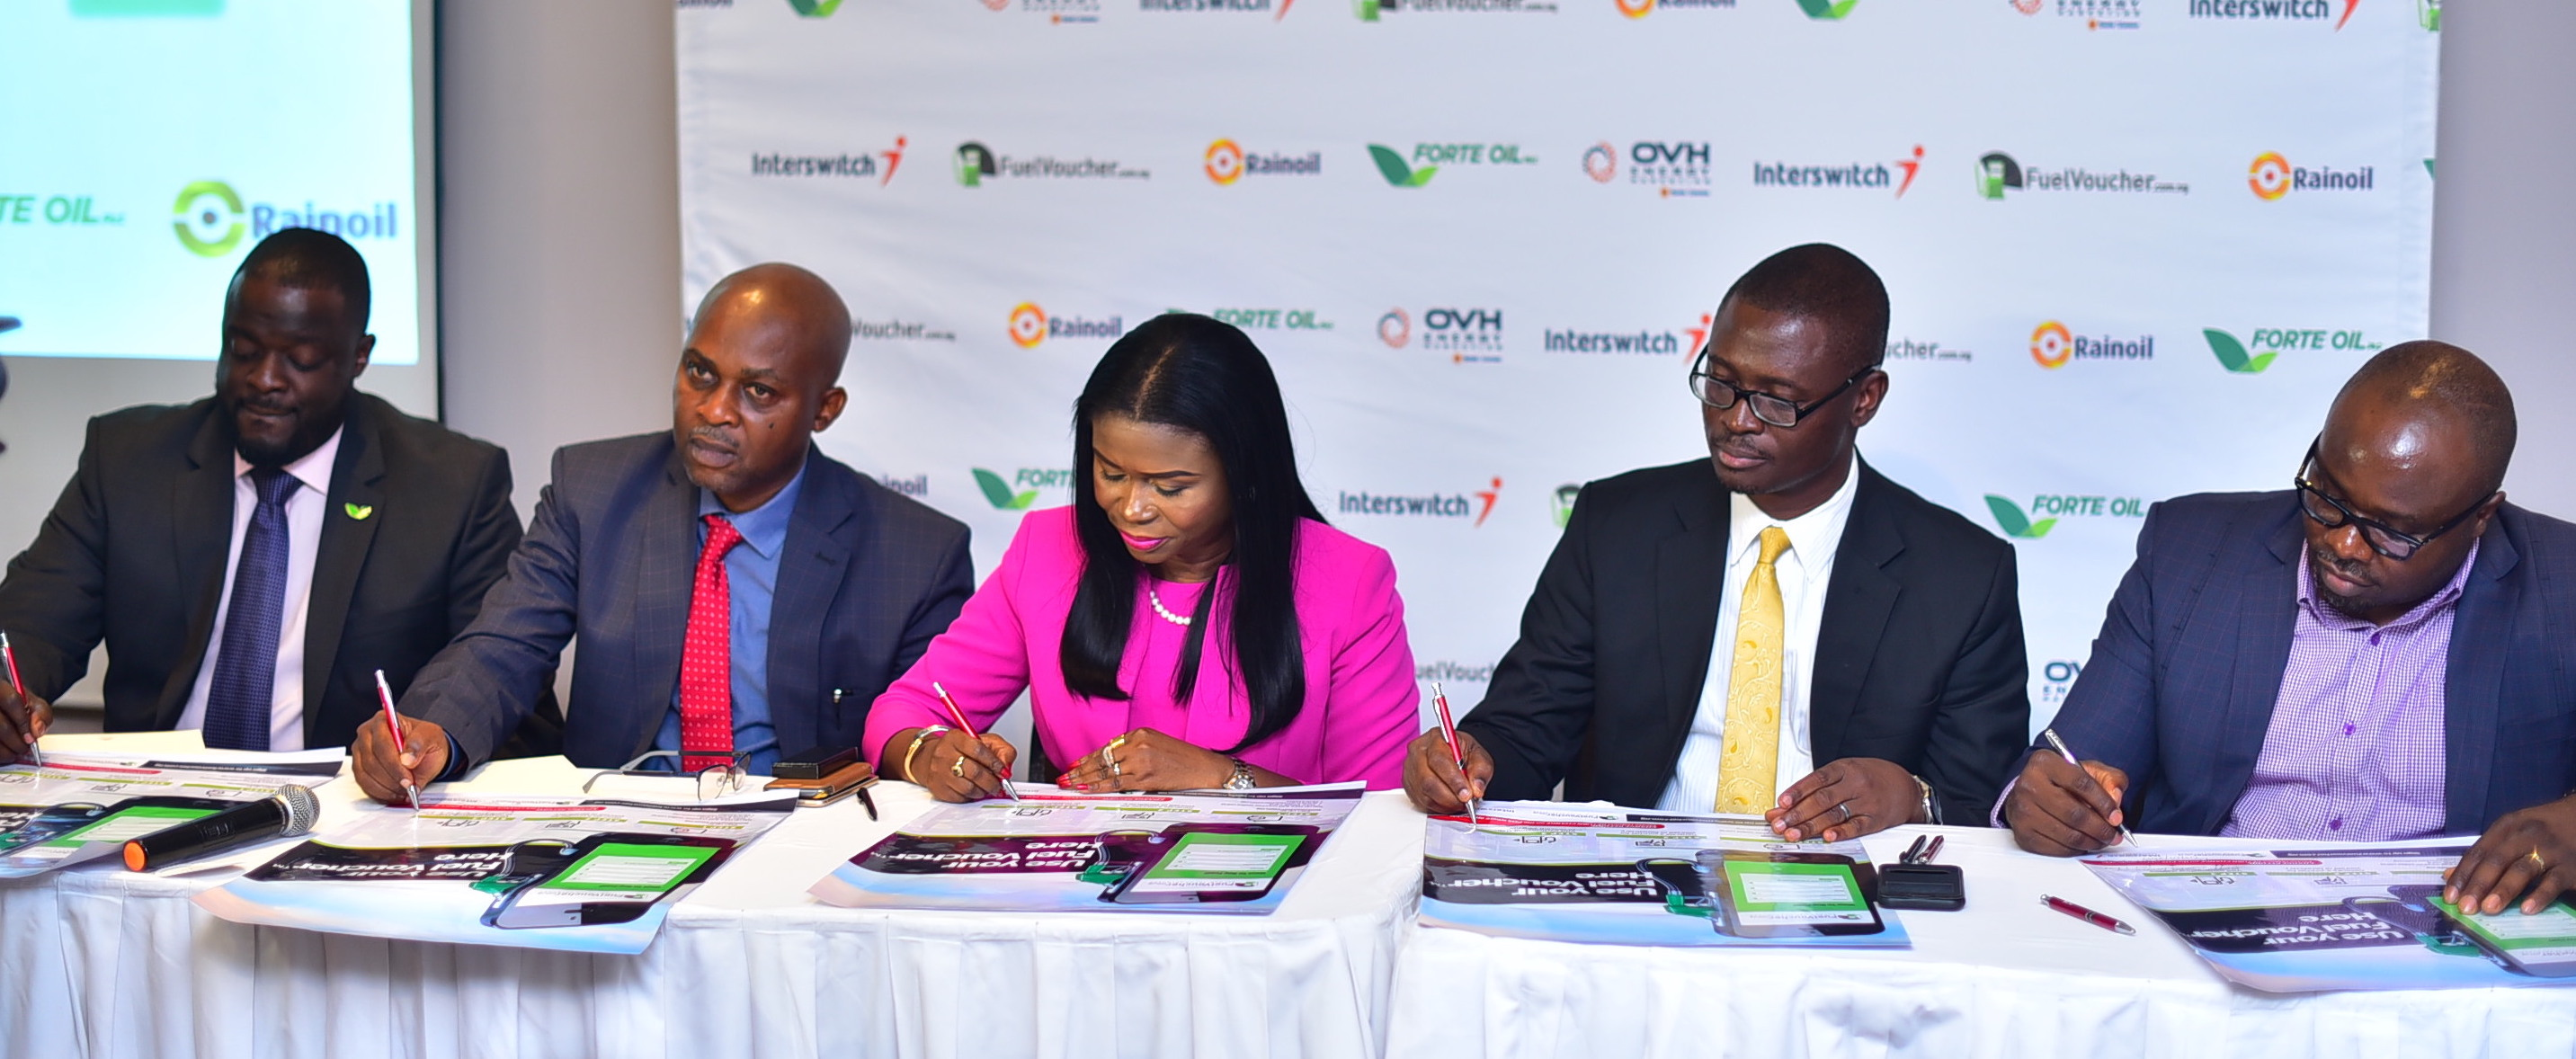 Tunde Pratt, Head of Supply, Trading and Depot Operations at Forte Oil; Kenneth Ndabai, Executive Director Operations at RainOil; Chinyere Don-Okhuofu, Divisional CEO of Interswitch Industry Vertical Markets; Babafemi Olabiyi, Head of Sales at OVH Energy Marketing and Mr. Chimezie Emewulu, CEO, Seamfix/EVSL